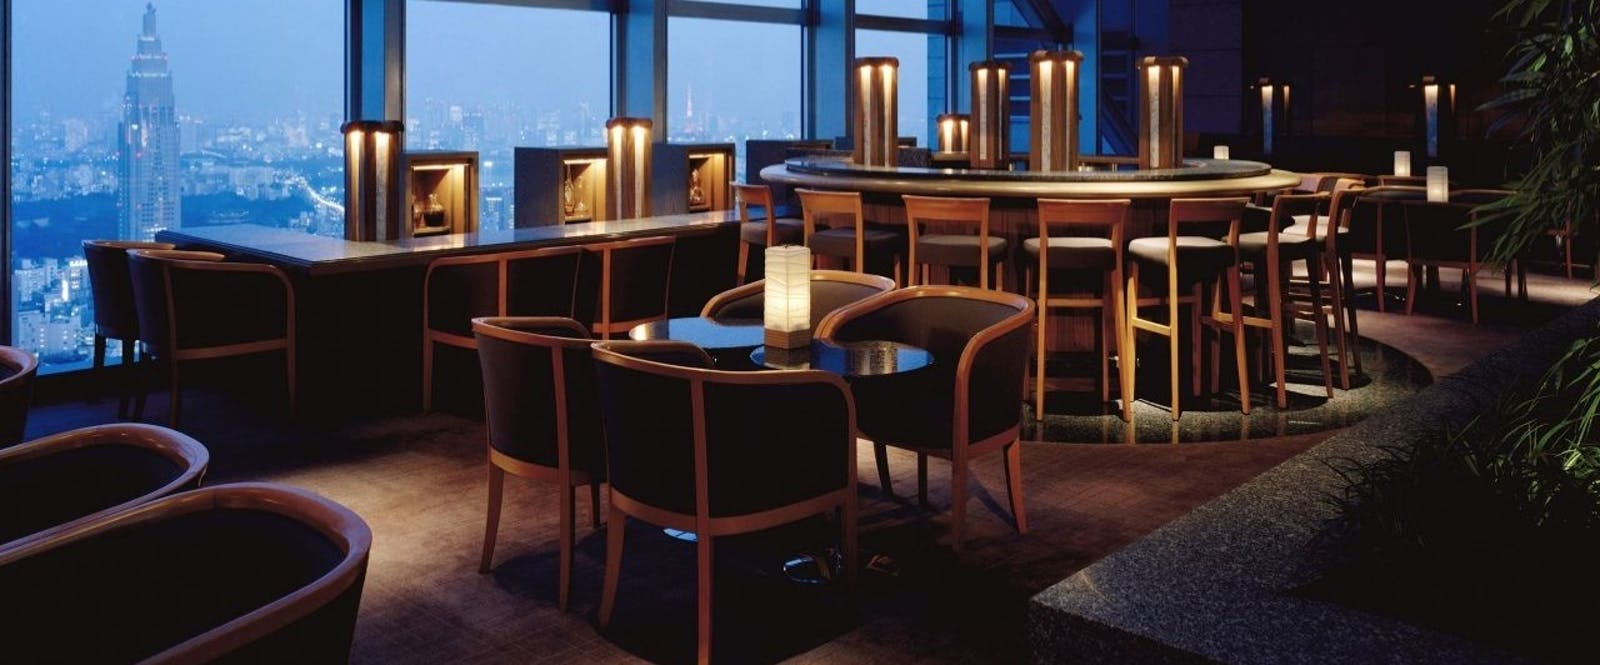 The Peak Bar at Park Hyatt Tokyo, Japan